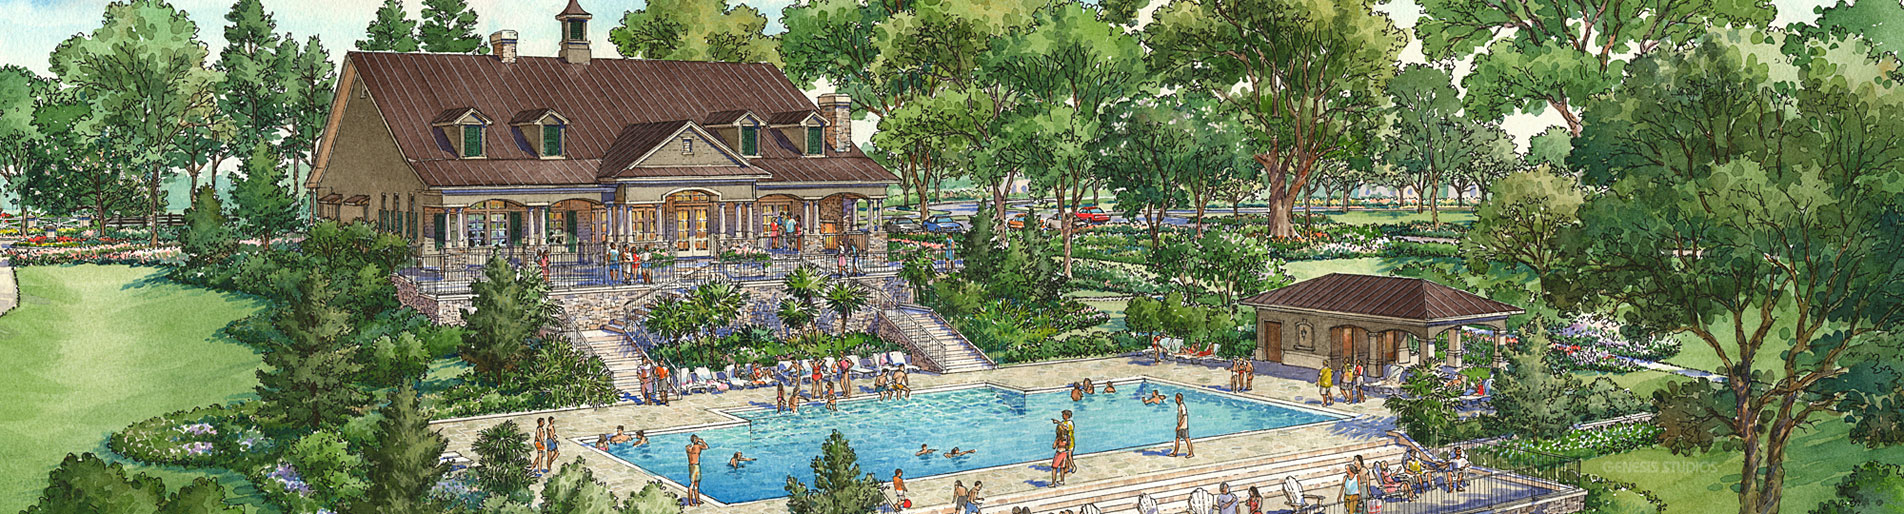 Pen and Ink with Watercolor Architectural Renderings of Sullivan Ranch Community Center Pool for Centex